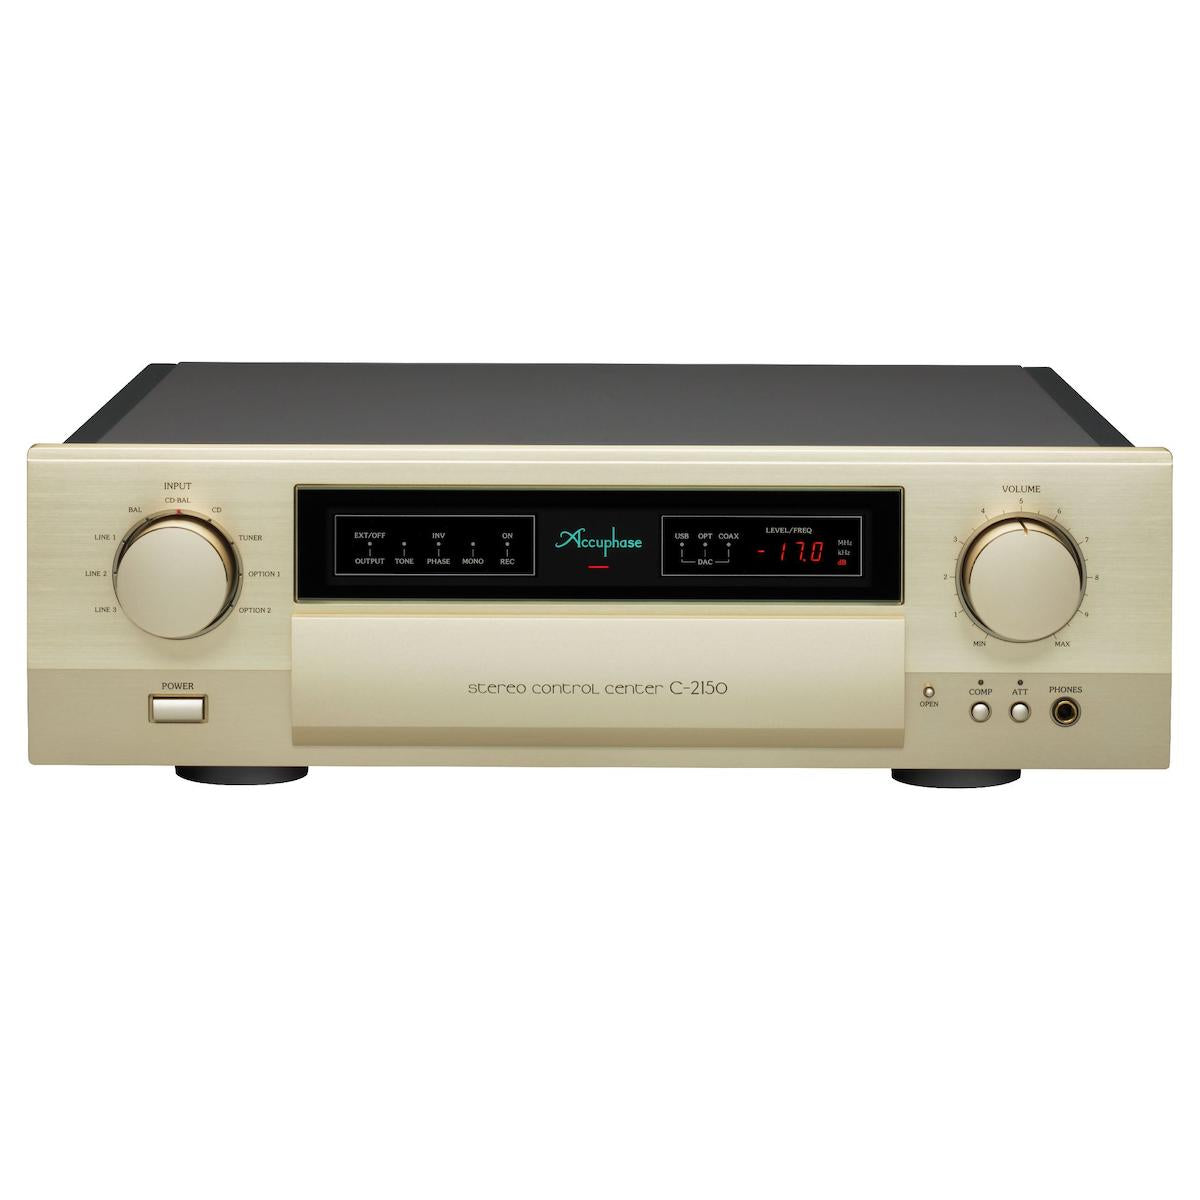 Accuphase C-2150 - Stereo Control Center, Accuphase Laboratory, Inc., Preamplifier - AVStore.in